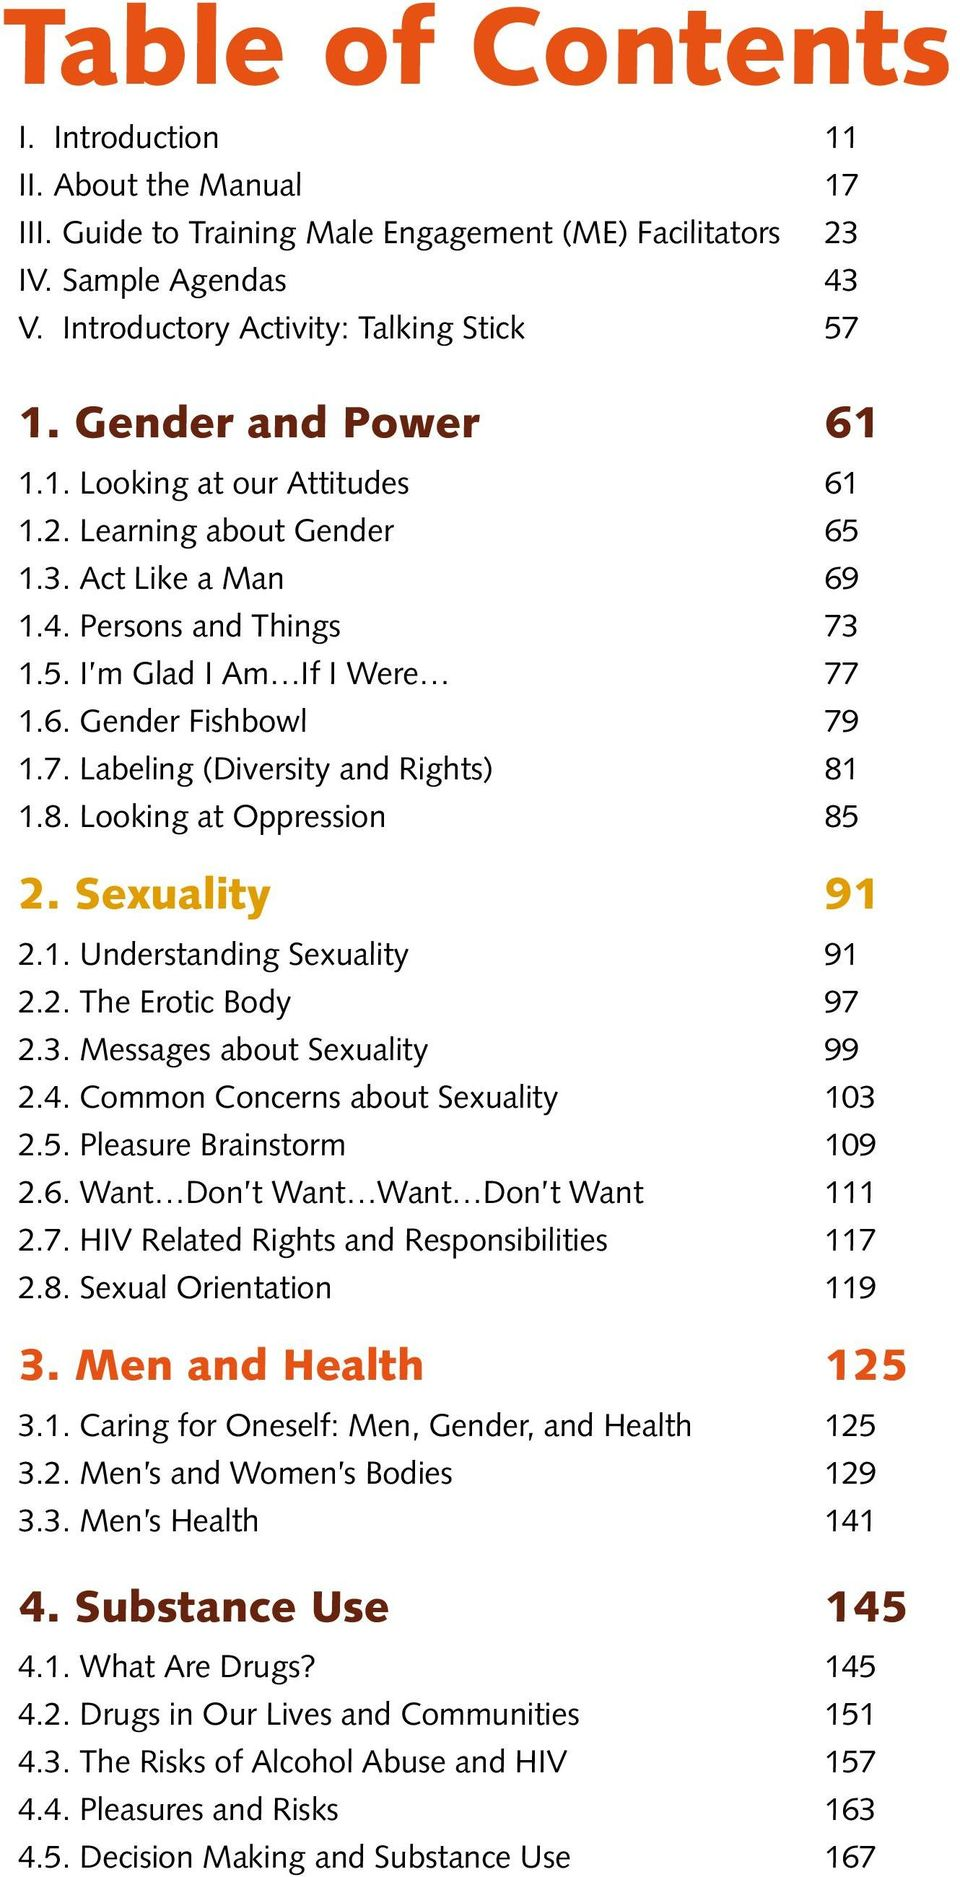 8. Looking at Oppression 85 2. Sexuality 91 2.1. Understanding Sexuality 91 2.2. The Erotic Body 97 2.3. Messages about Sexuality 99 2.4. Common Concerns about Sexuality 103 2.5. Pleasure Brainstorm 109 2.